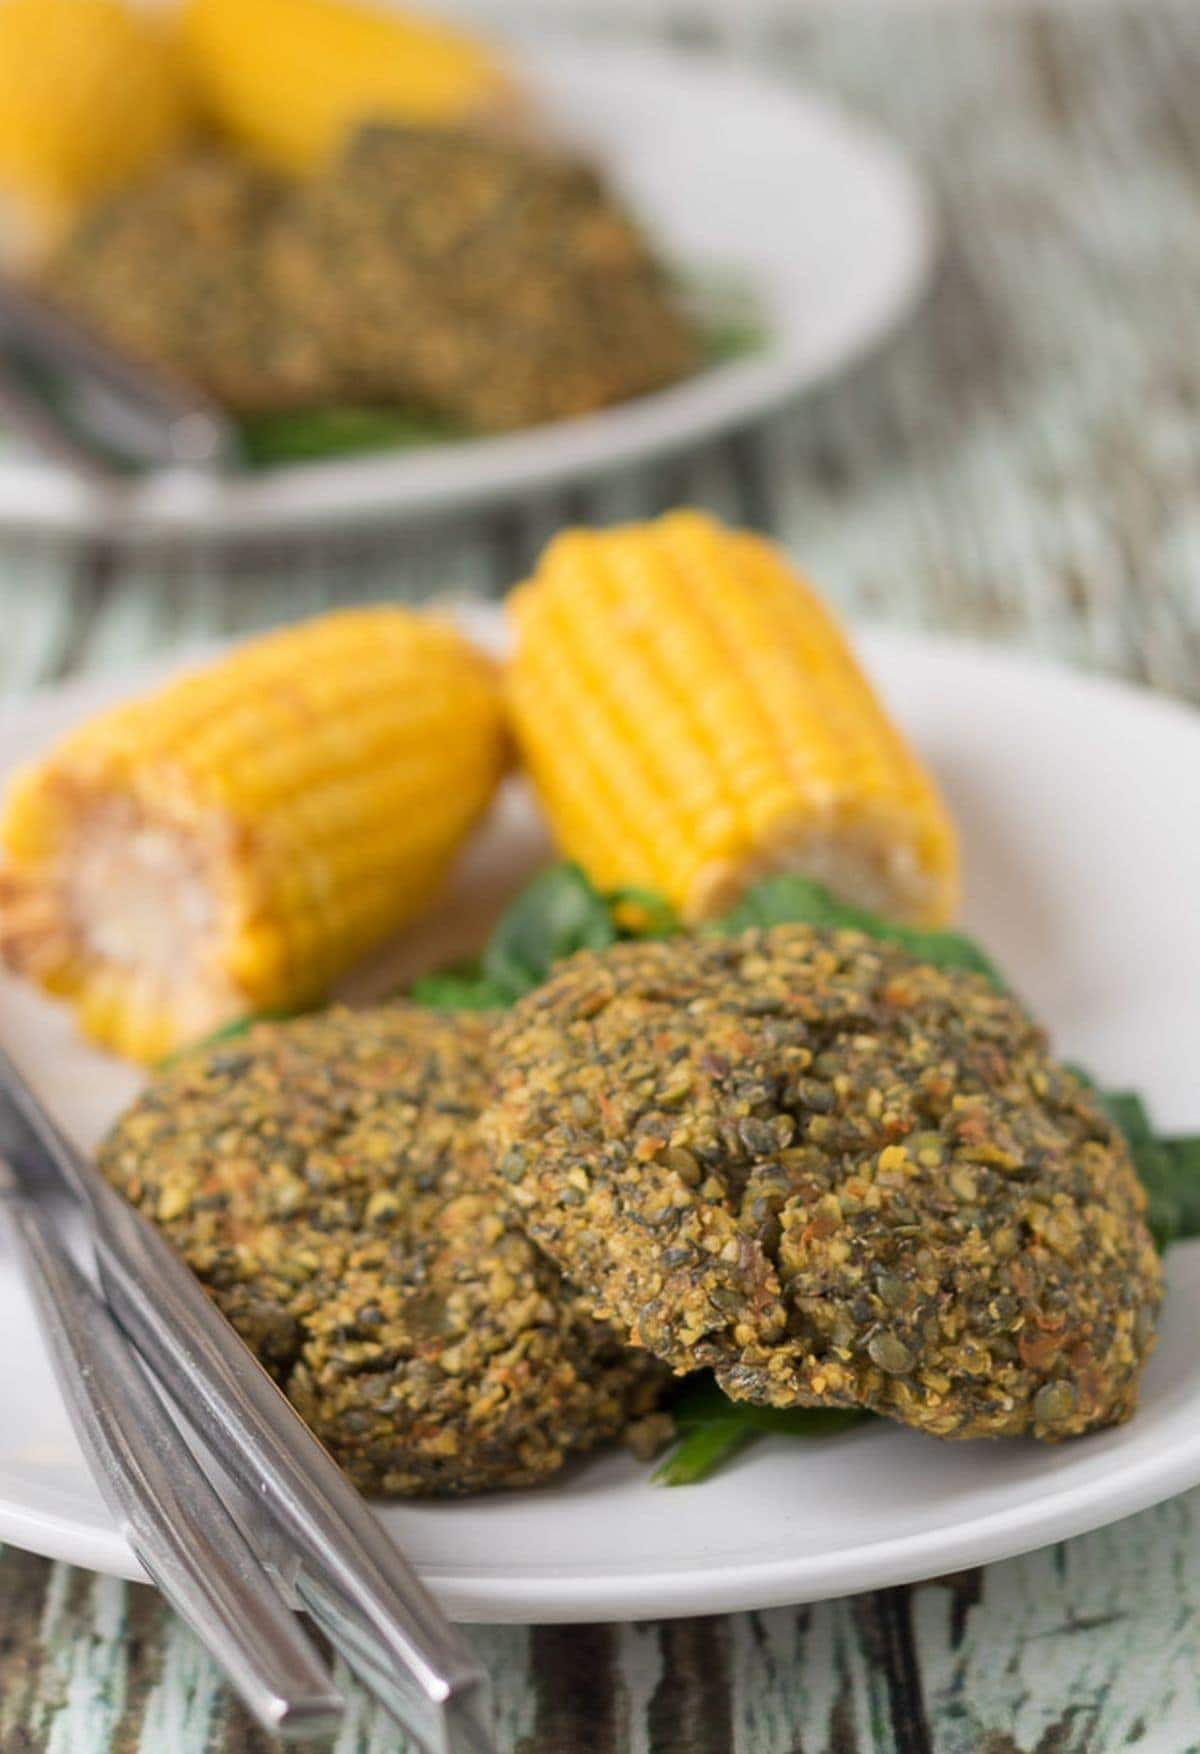 Two oven baked lentil and carrot patties served on a plate with spinach and two corn on the cobs. Another similar plate in the background.